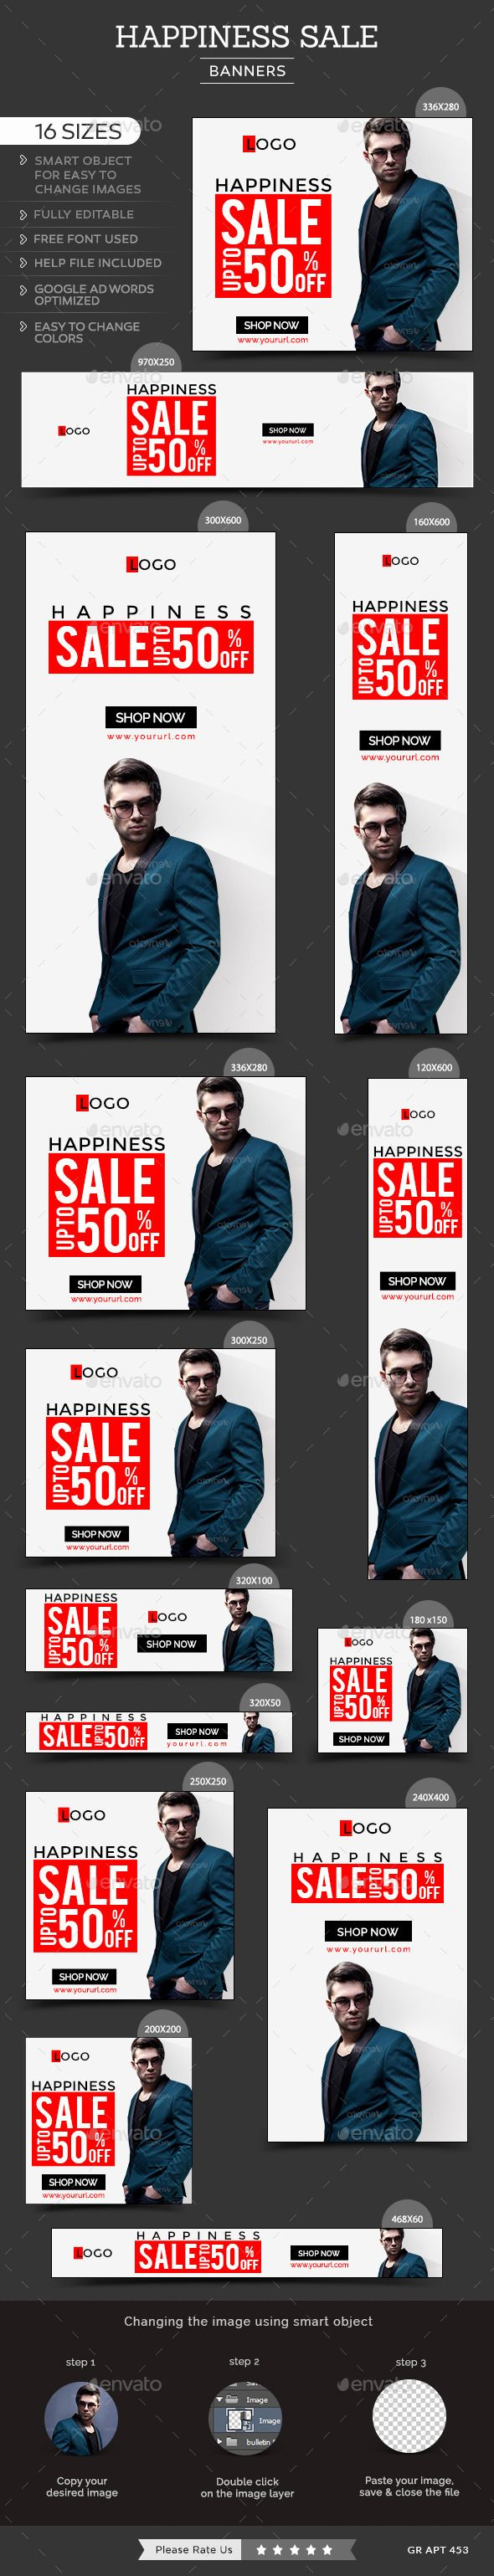 16 awesome quality banner template PSD files ready for your Services, products, campaigns.Each PSD files are layered and fully organized. You can use this banners for google adwords & Adroll too. ( All google adwords, Adroll banner sizes included).